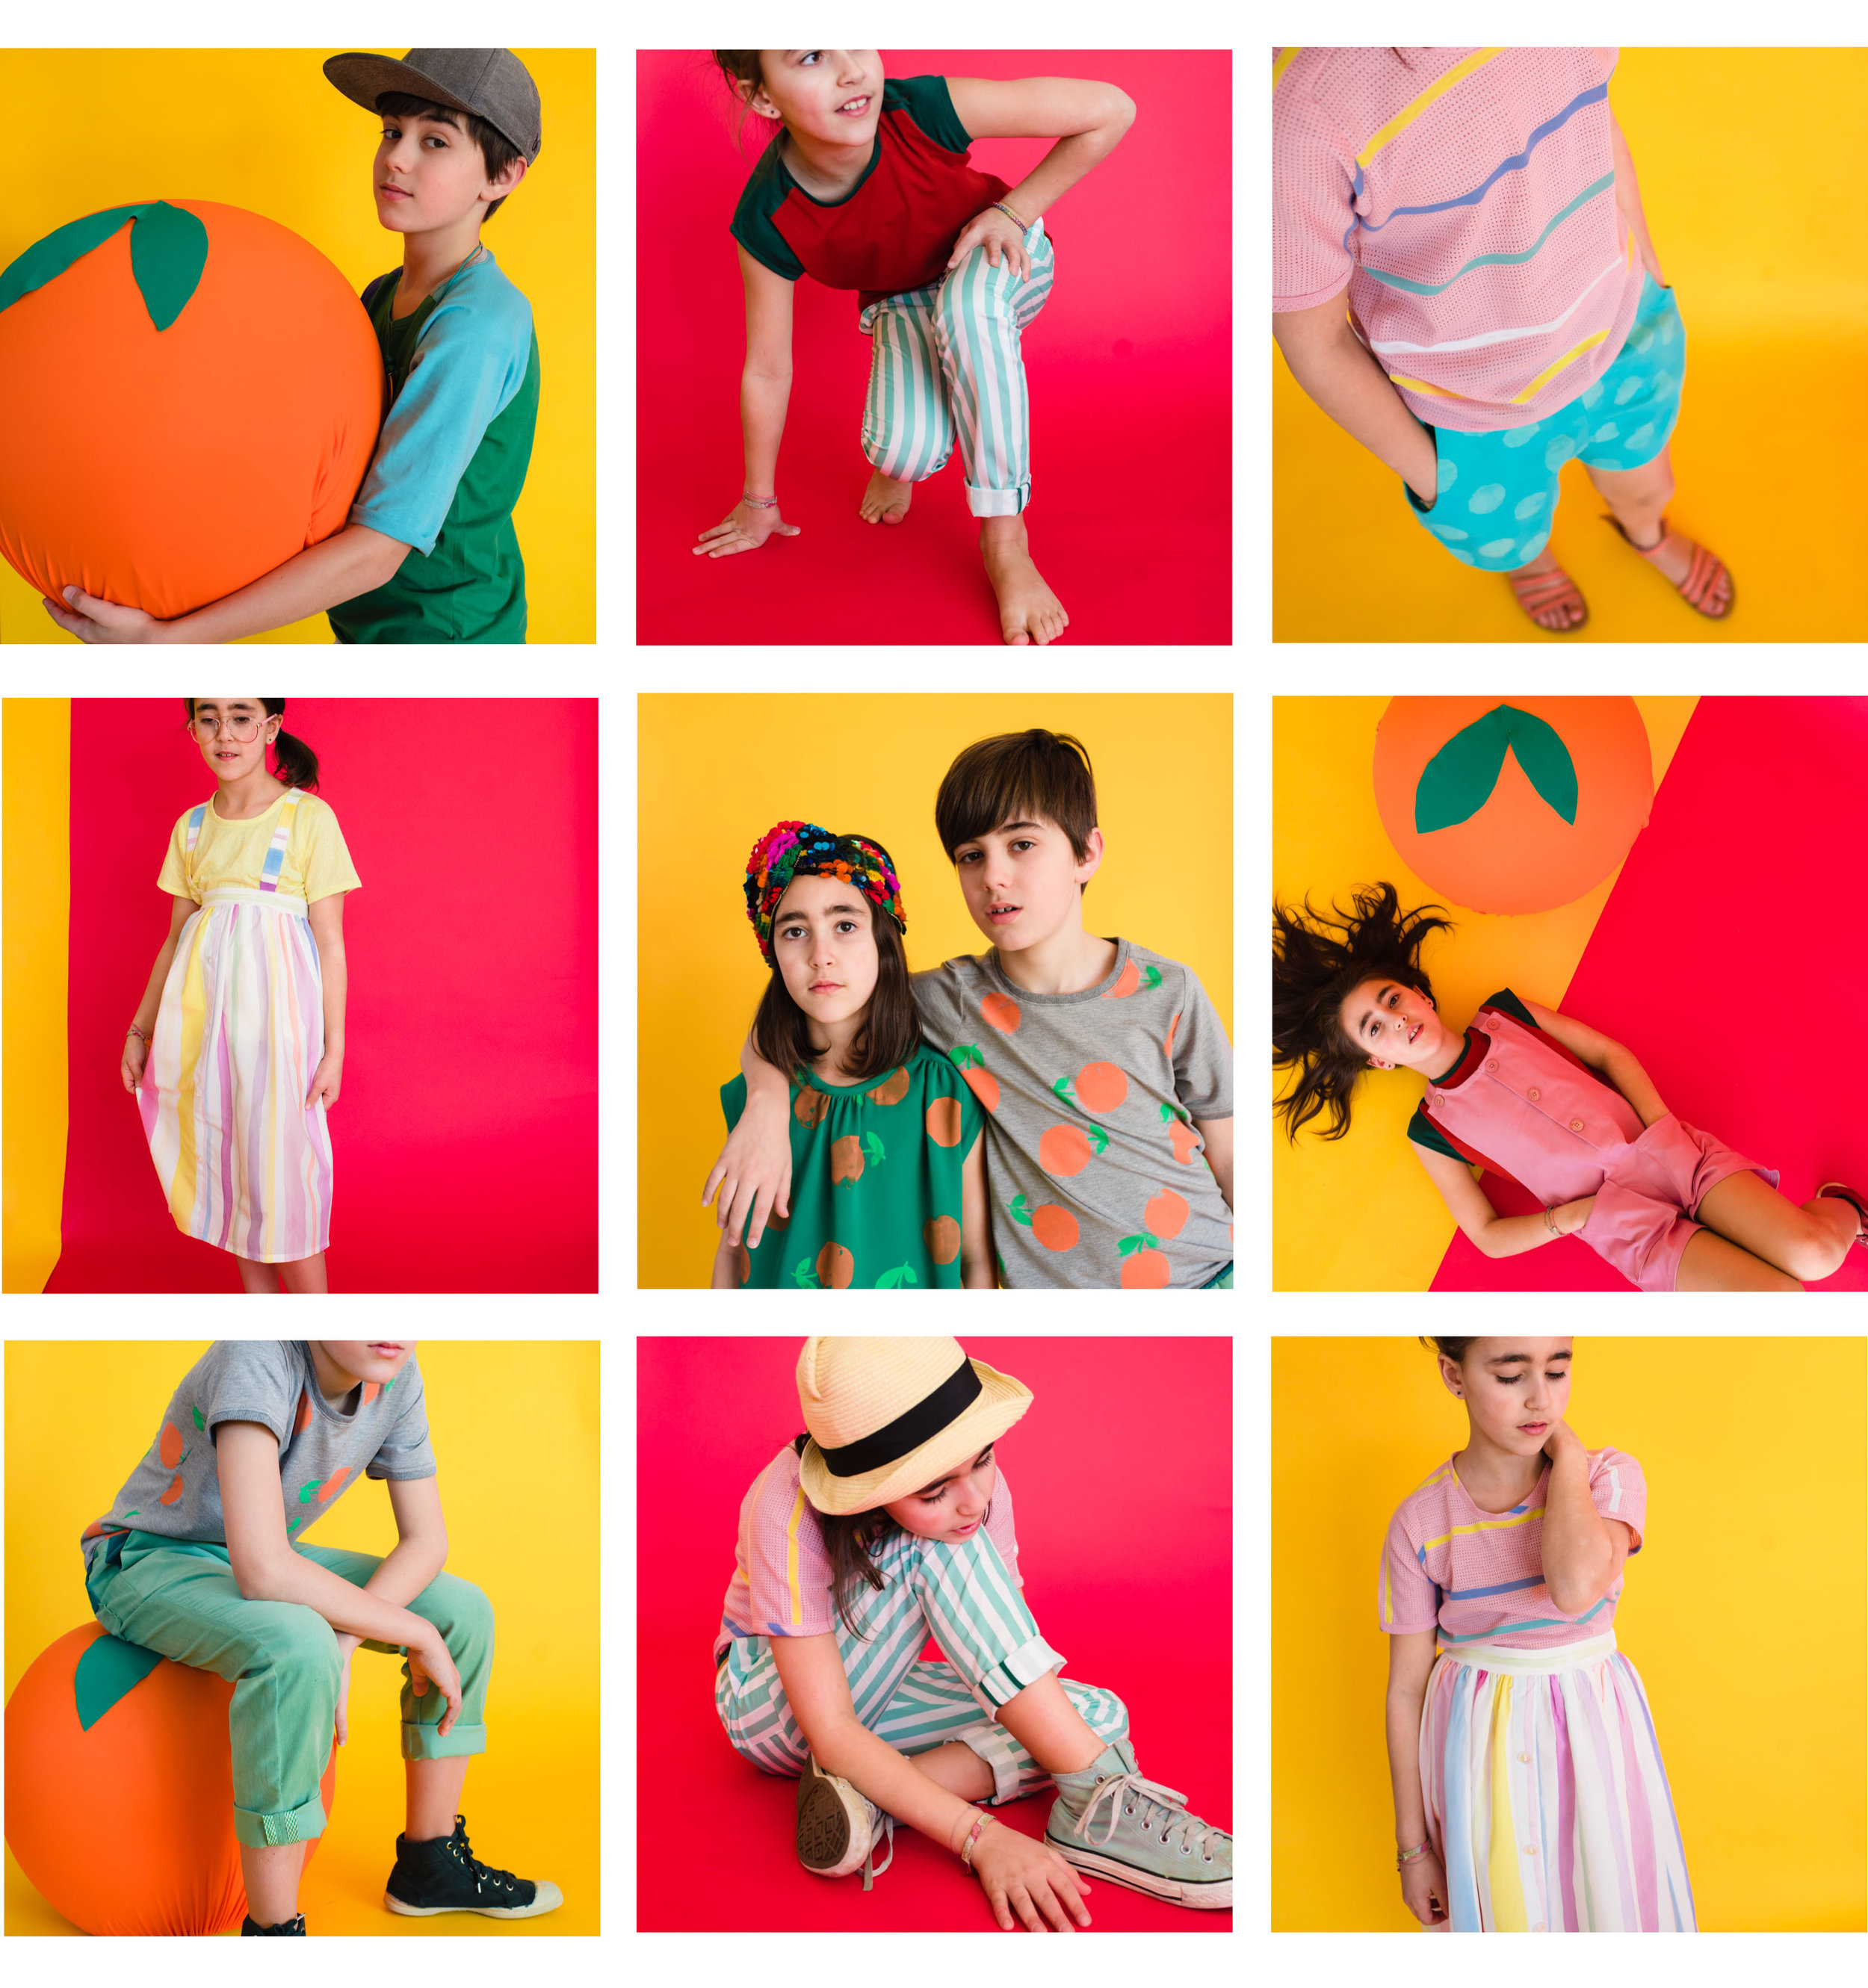 collage of a boy and girl wearing handmade clothing in colorful fabrics